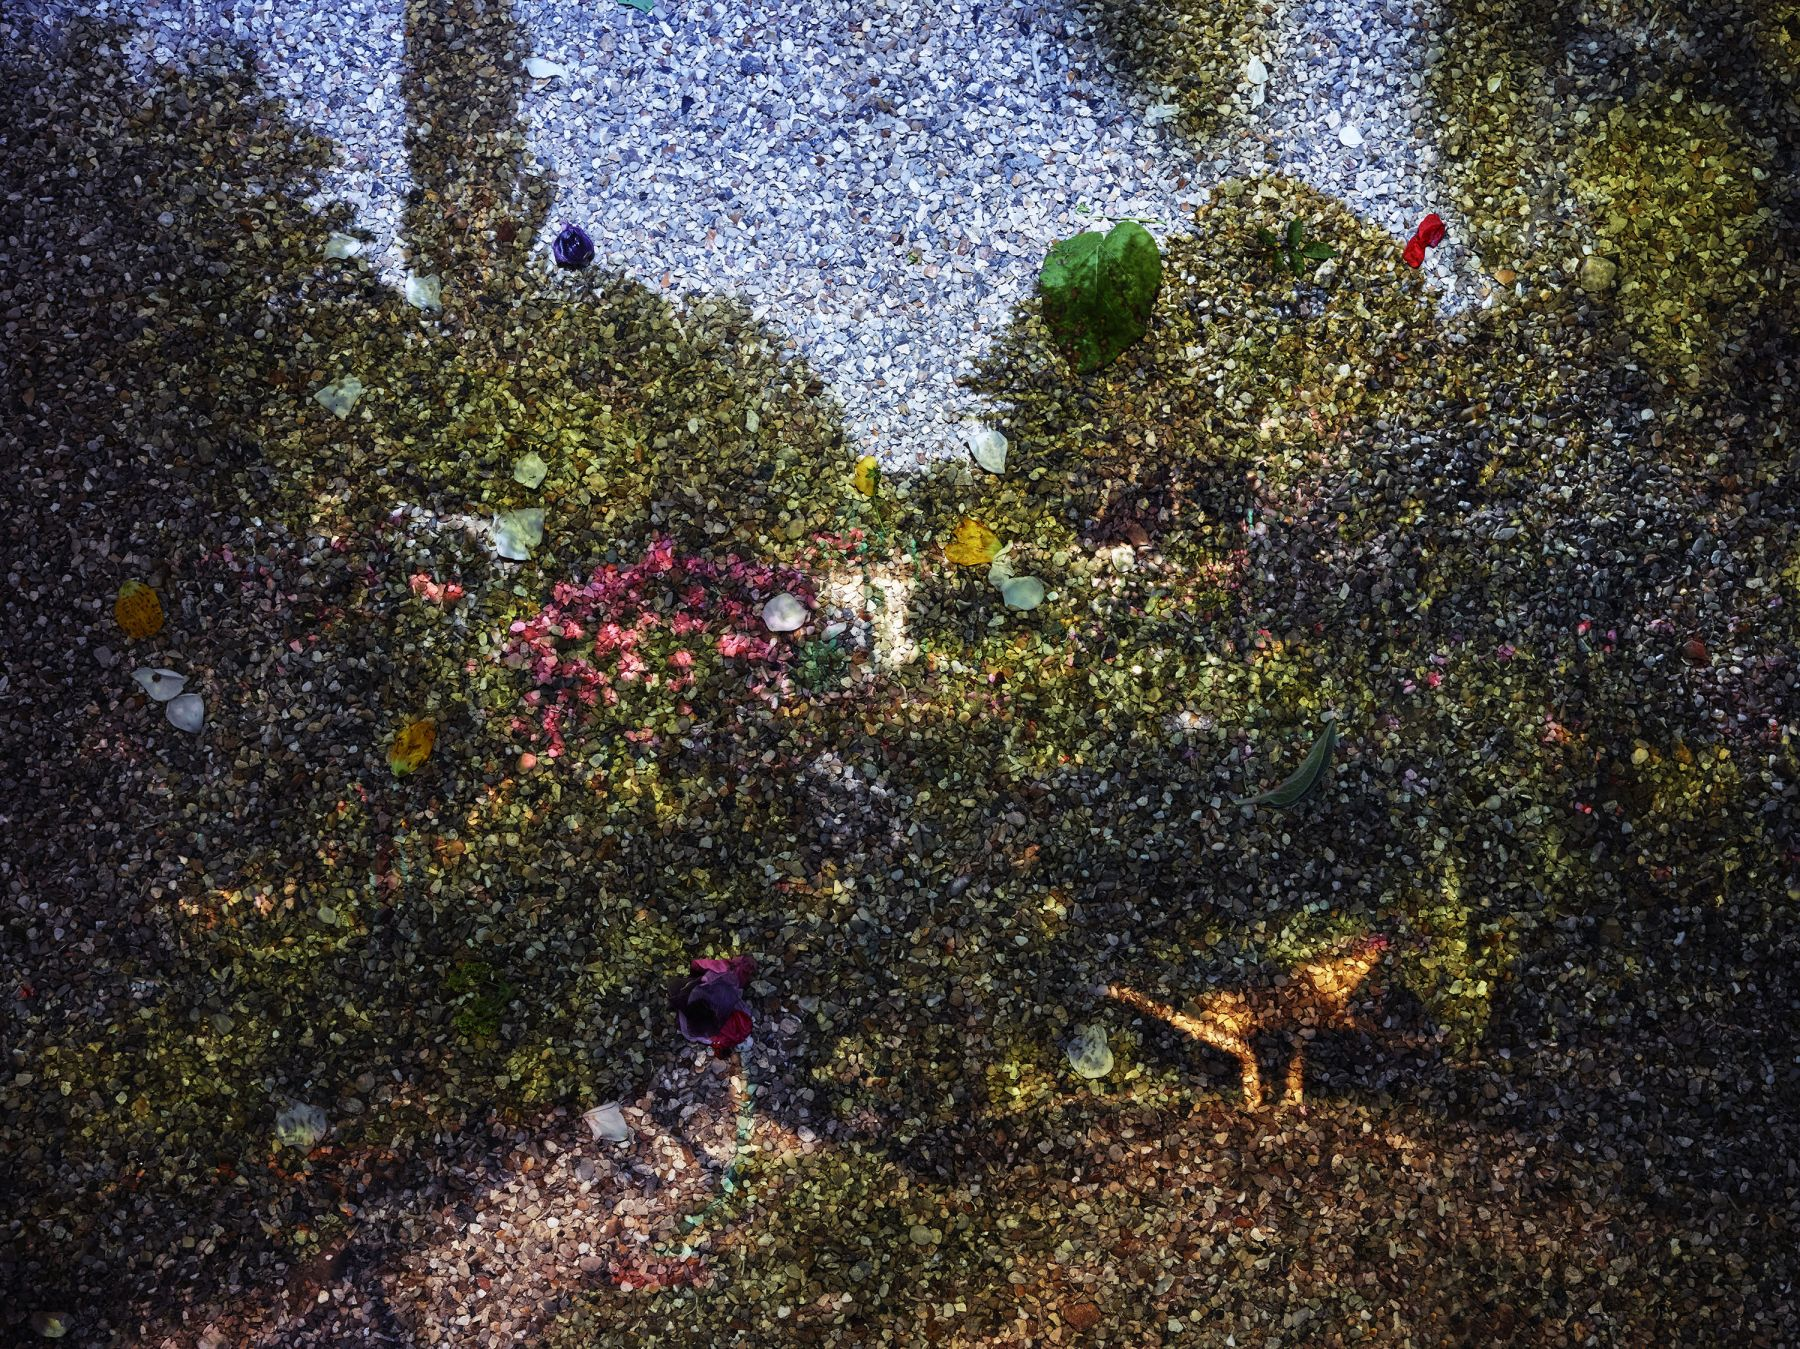 abelardo morell Tent-Camera Image on Ground: View of Monet's Gardens with Wheelbarrow, Giverny, France